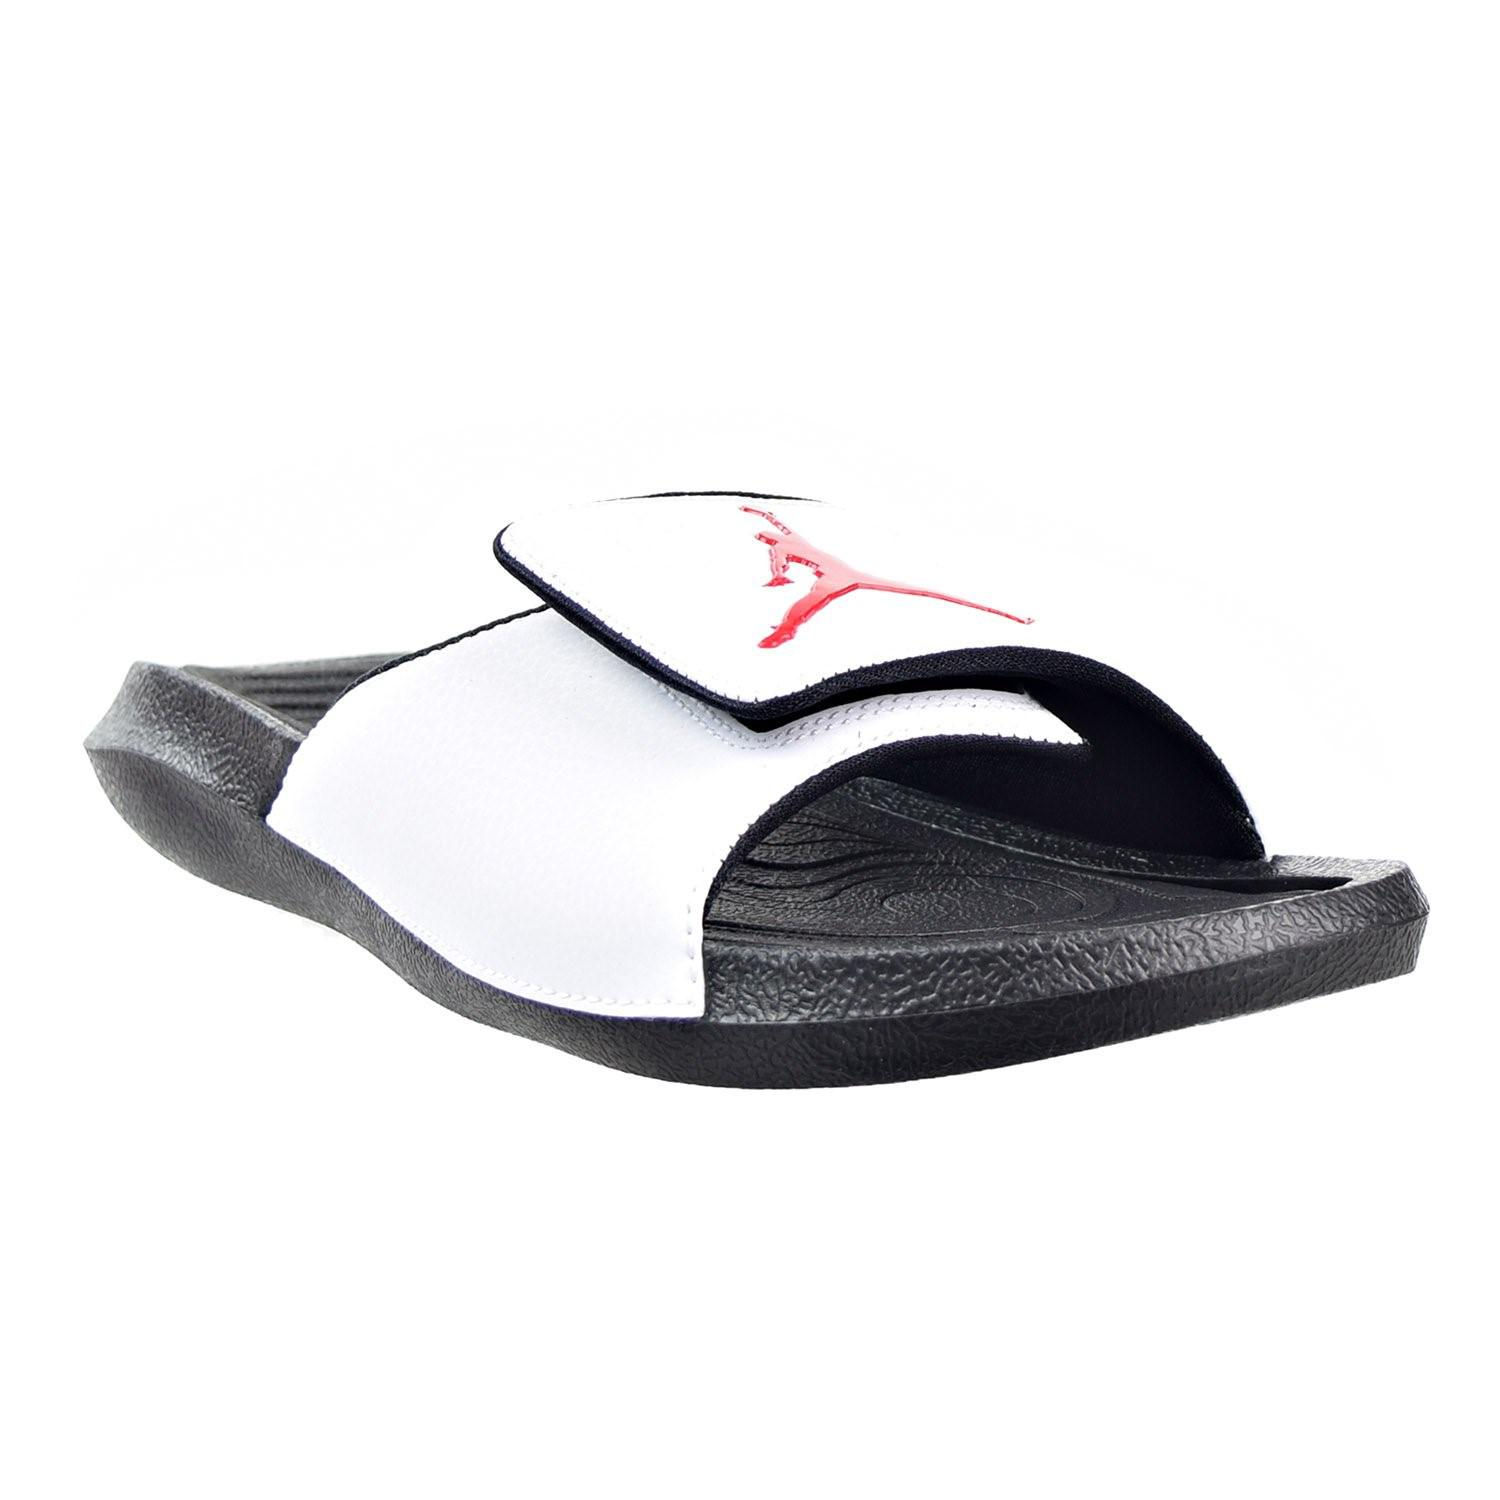 74be625ba Lyst - Nike Jordan Hydro 6 Sandals White black gym Red (13 D(m) Us)